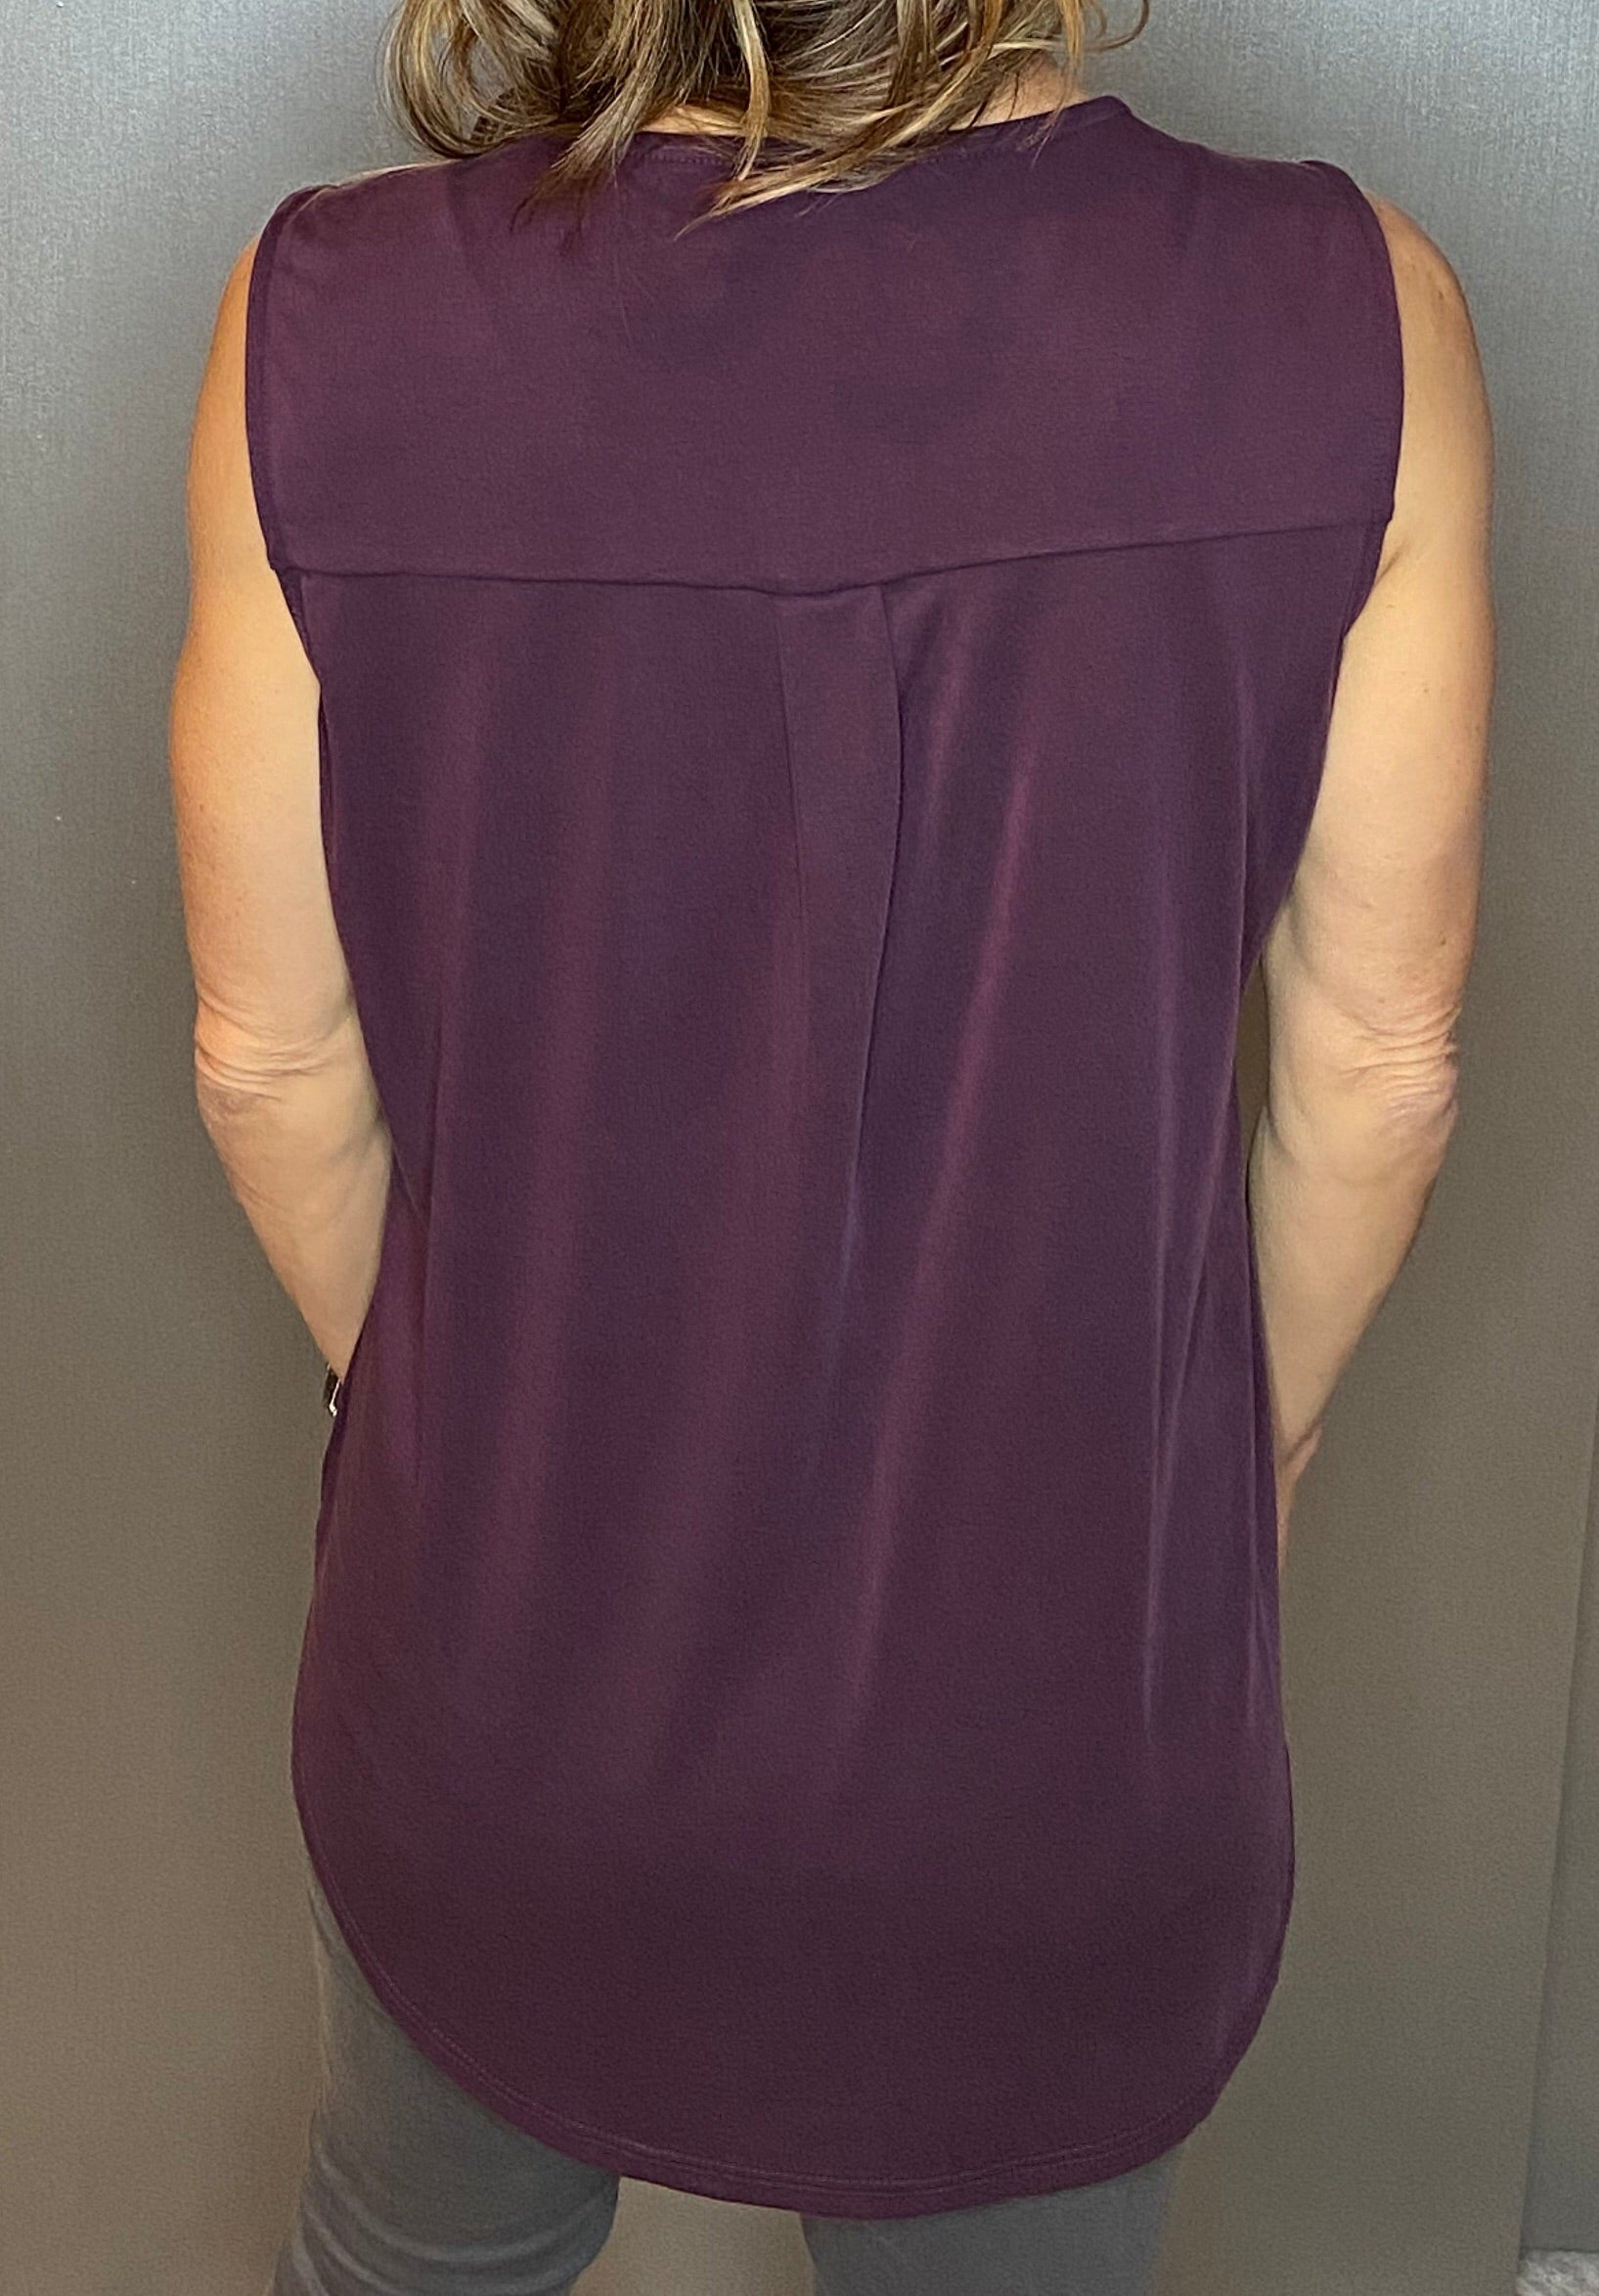 Sleeve less top